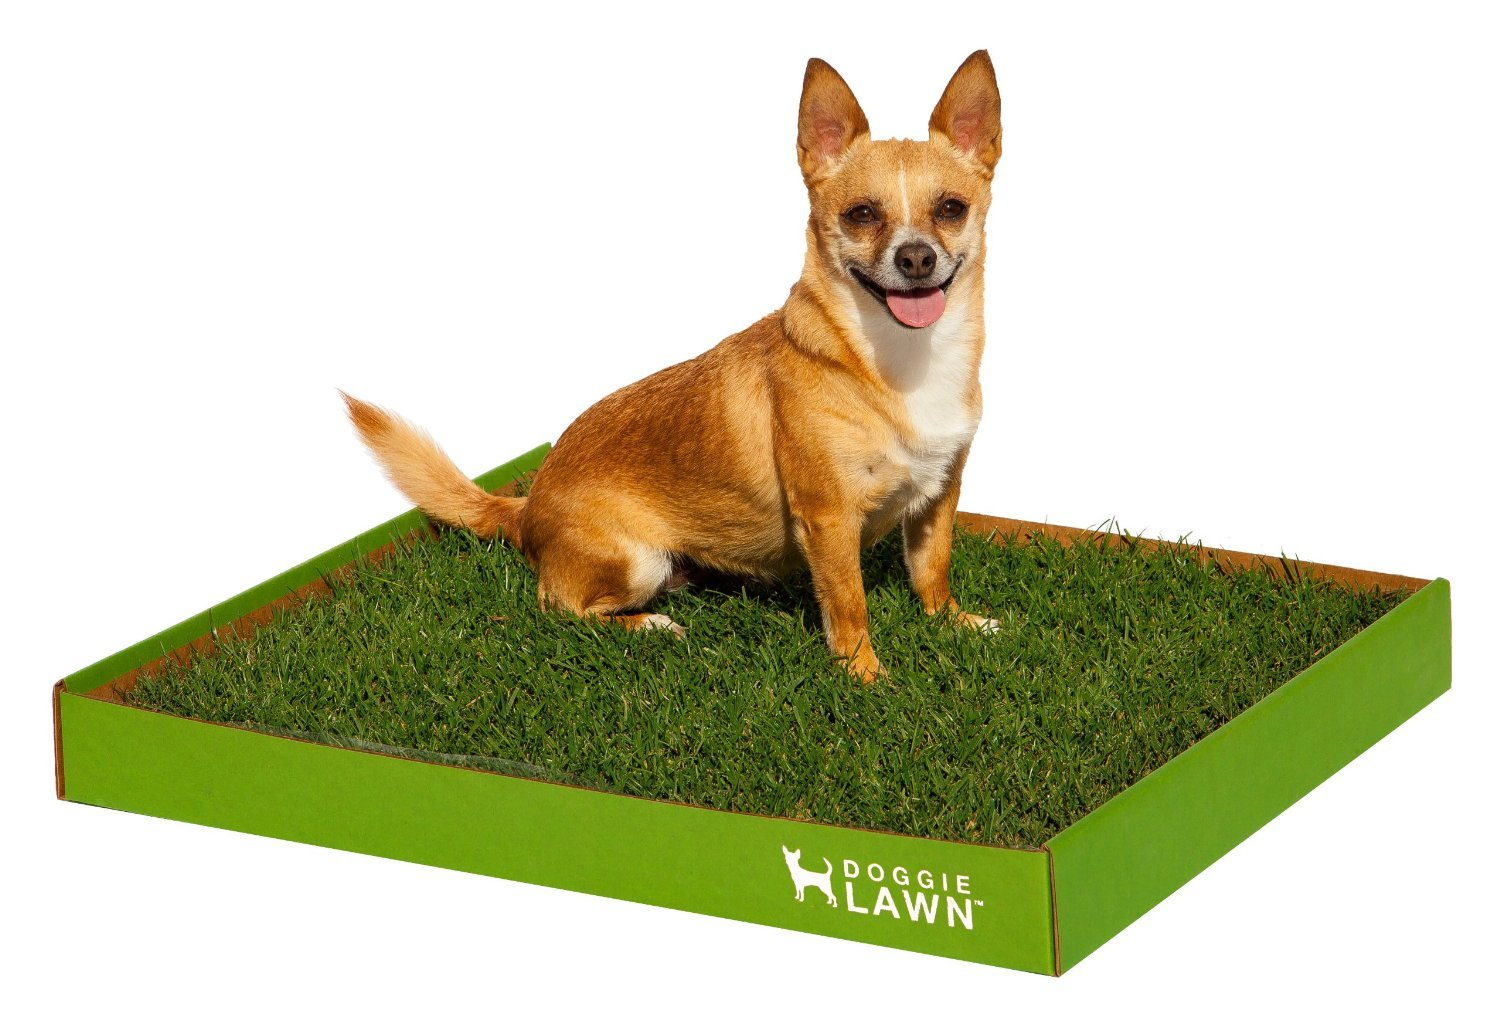 Real Grass Dog Potty (Disposable) - Medium 20in by DoggieLawn